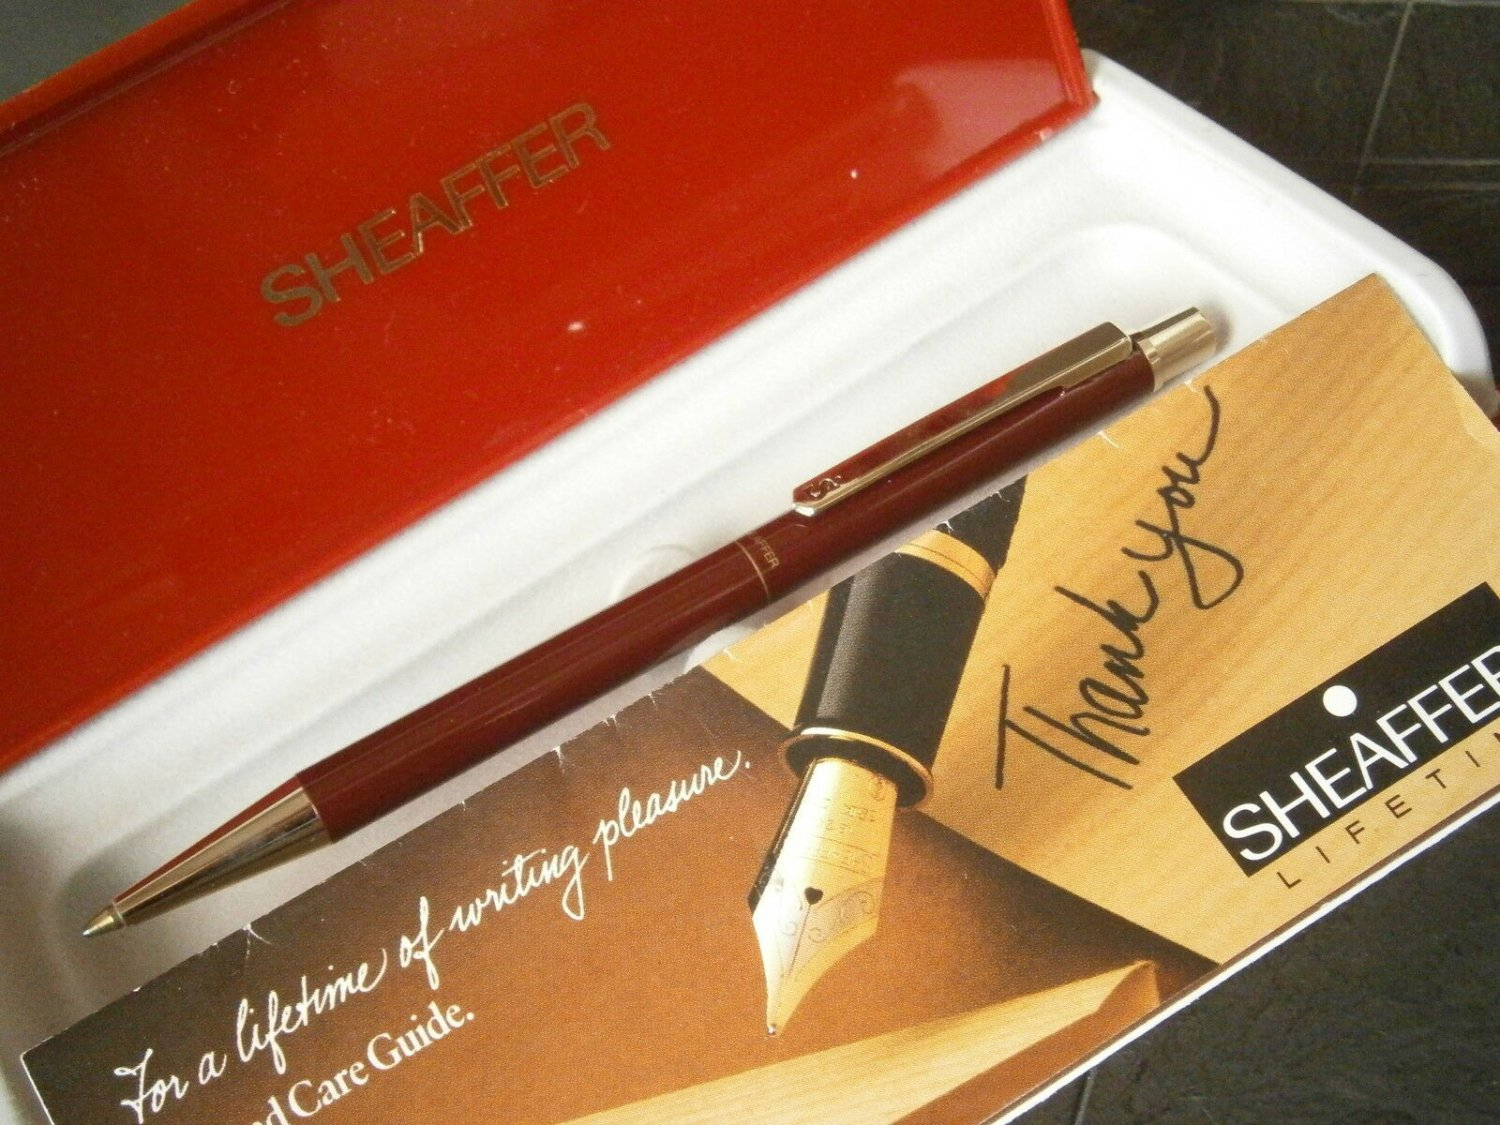 SHEAFFER SAILOR ball pen in steel lacque in dark red color Original in gift box with garantee